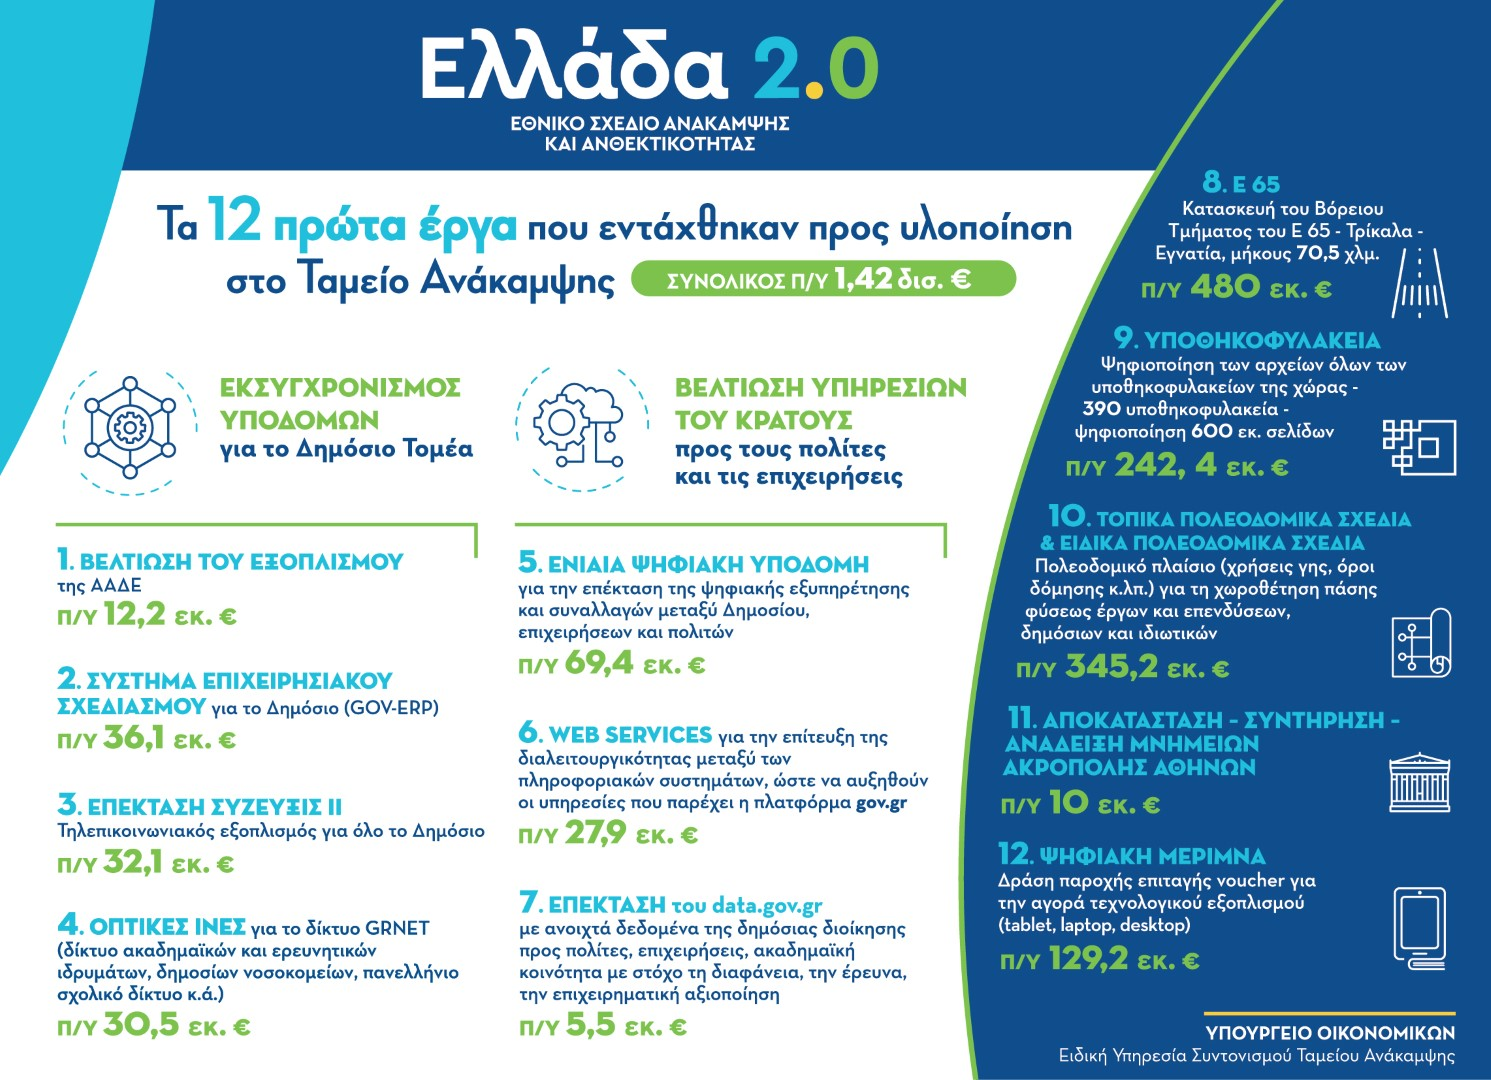 Greece 2.0_infographic 5_1 (Large)